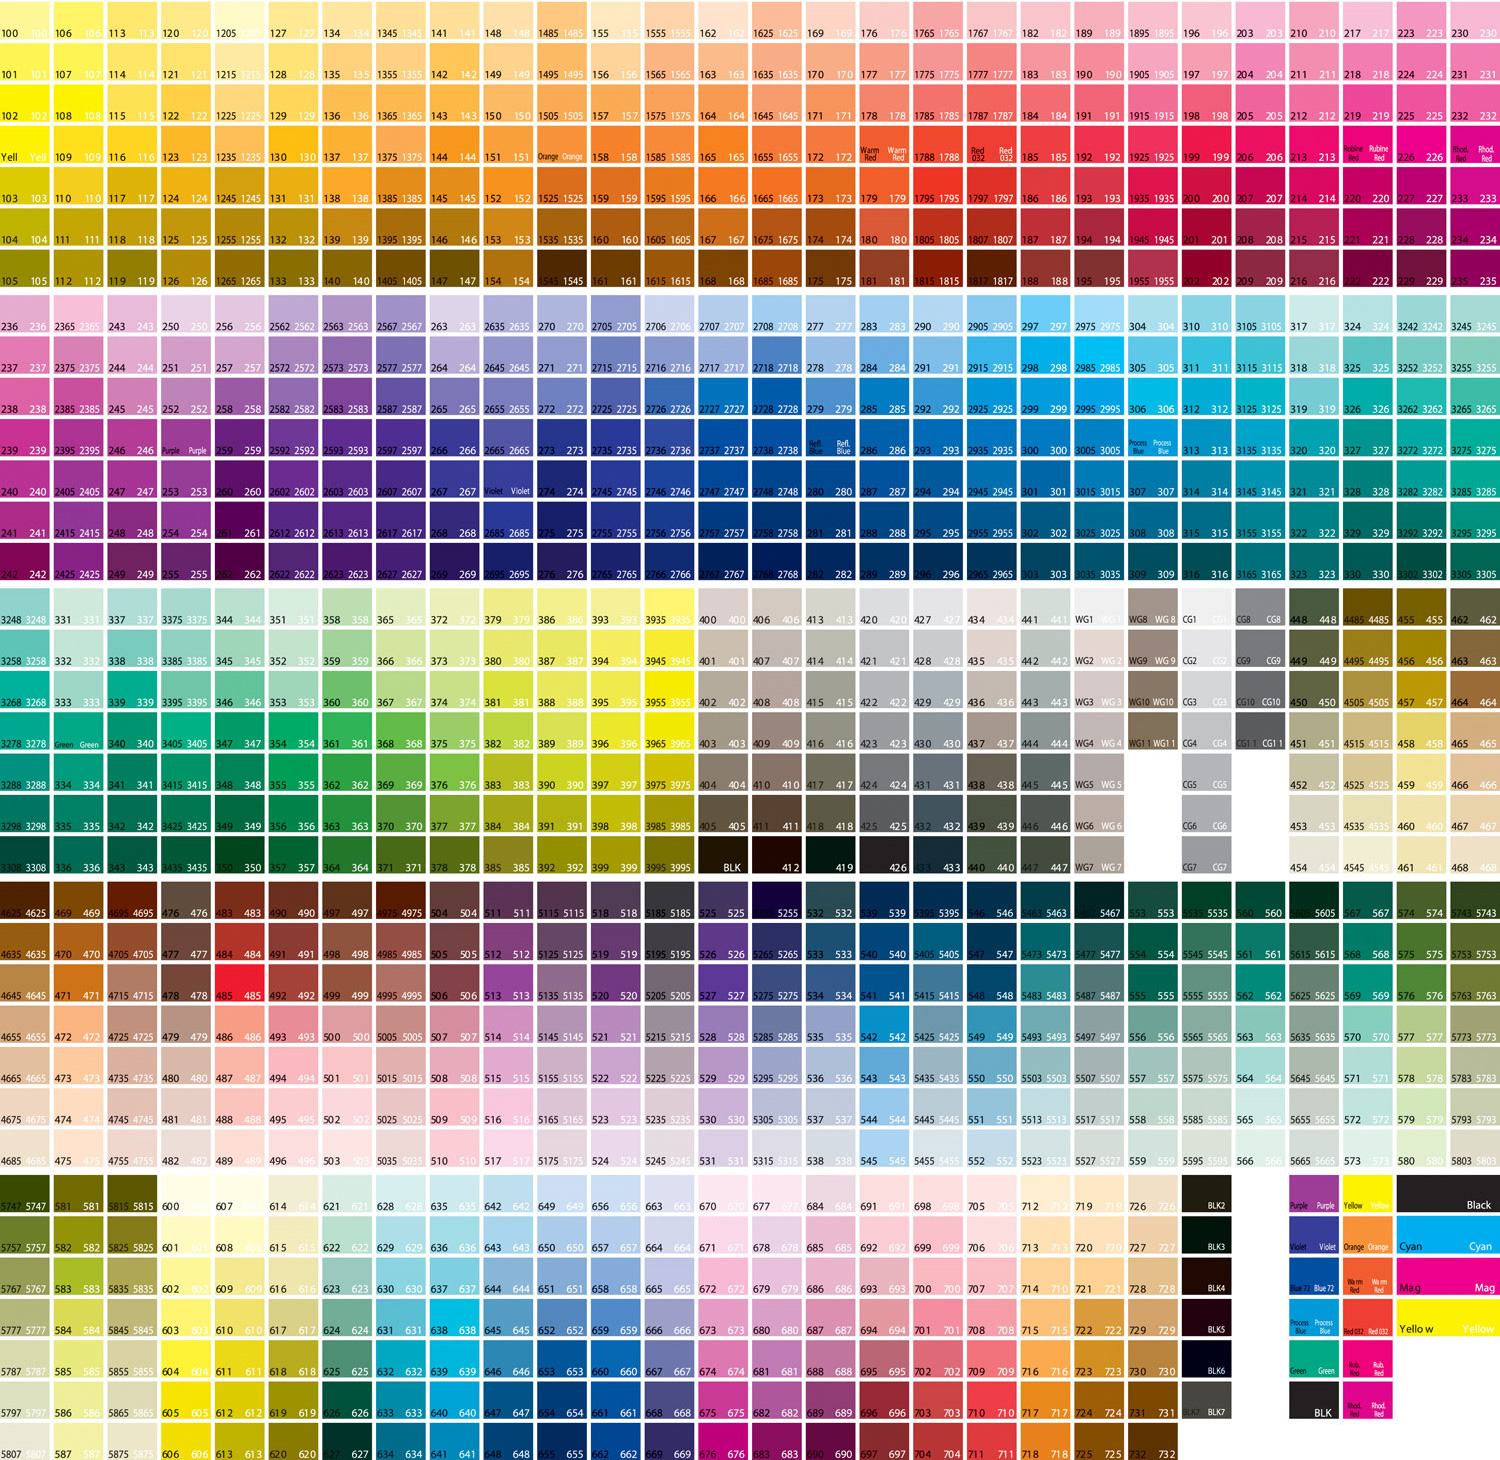 Pantone color chart 804 signs pantone color chart nvjuhfo Gallery